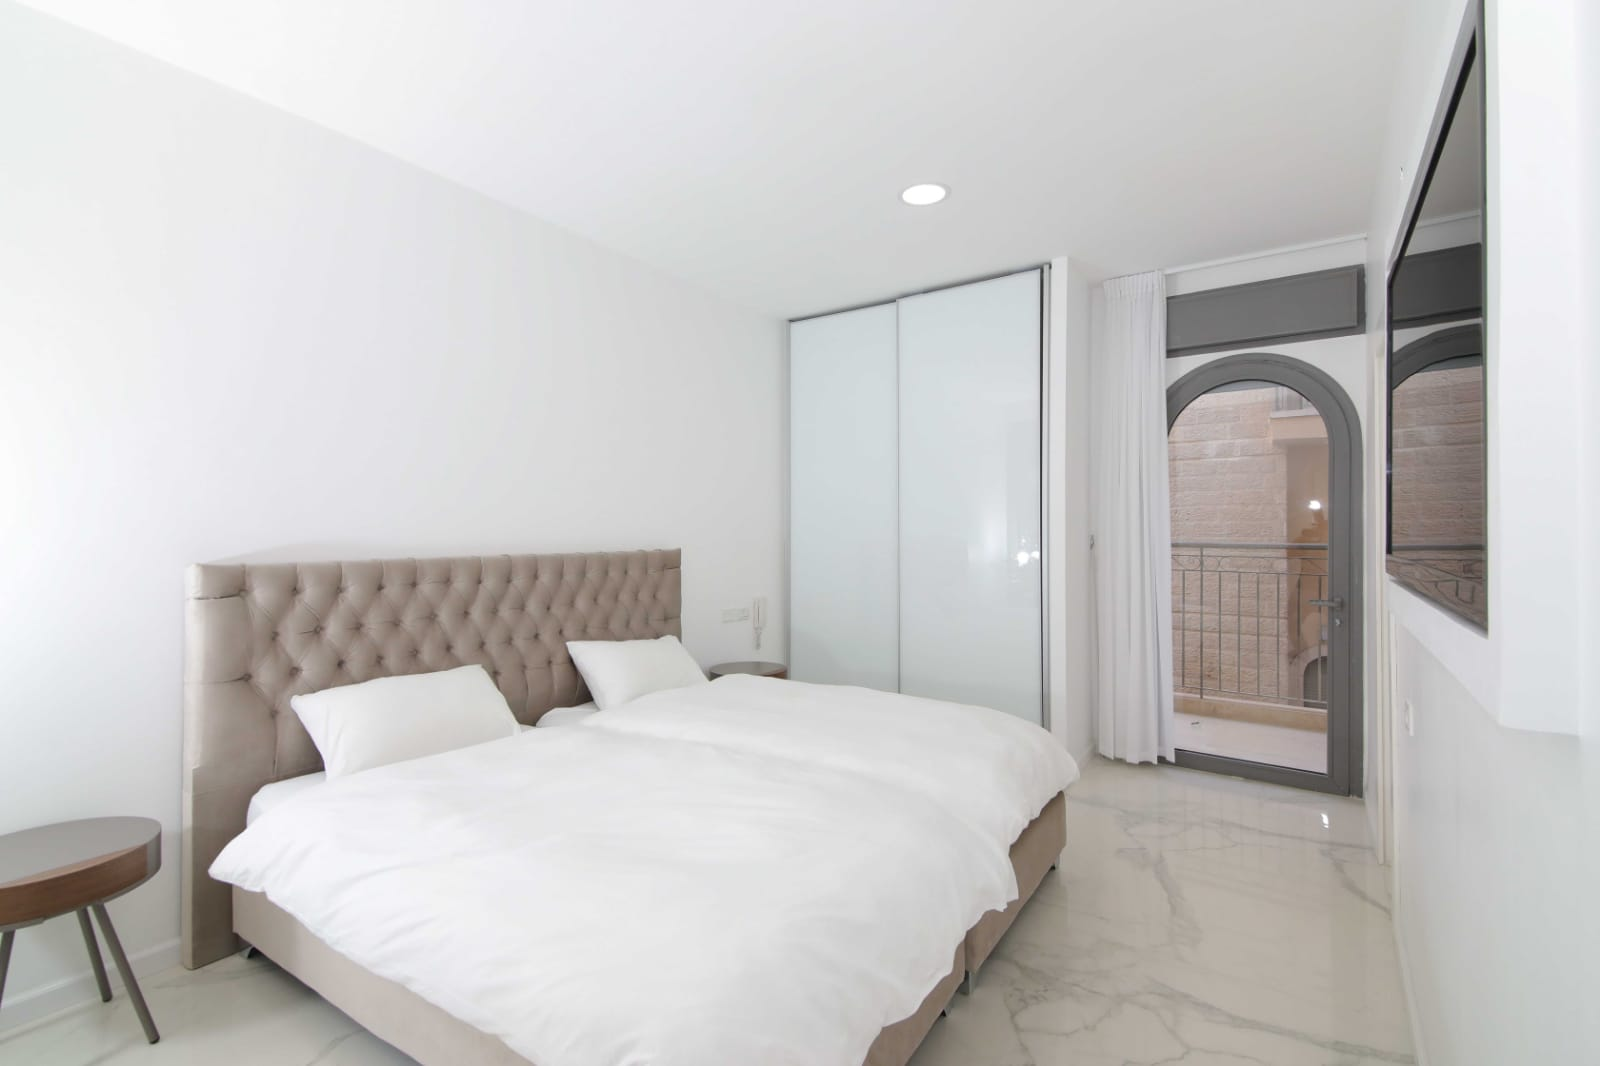 2.New 4 BR Luxury City Rental  image #14